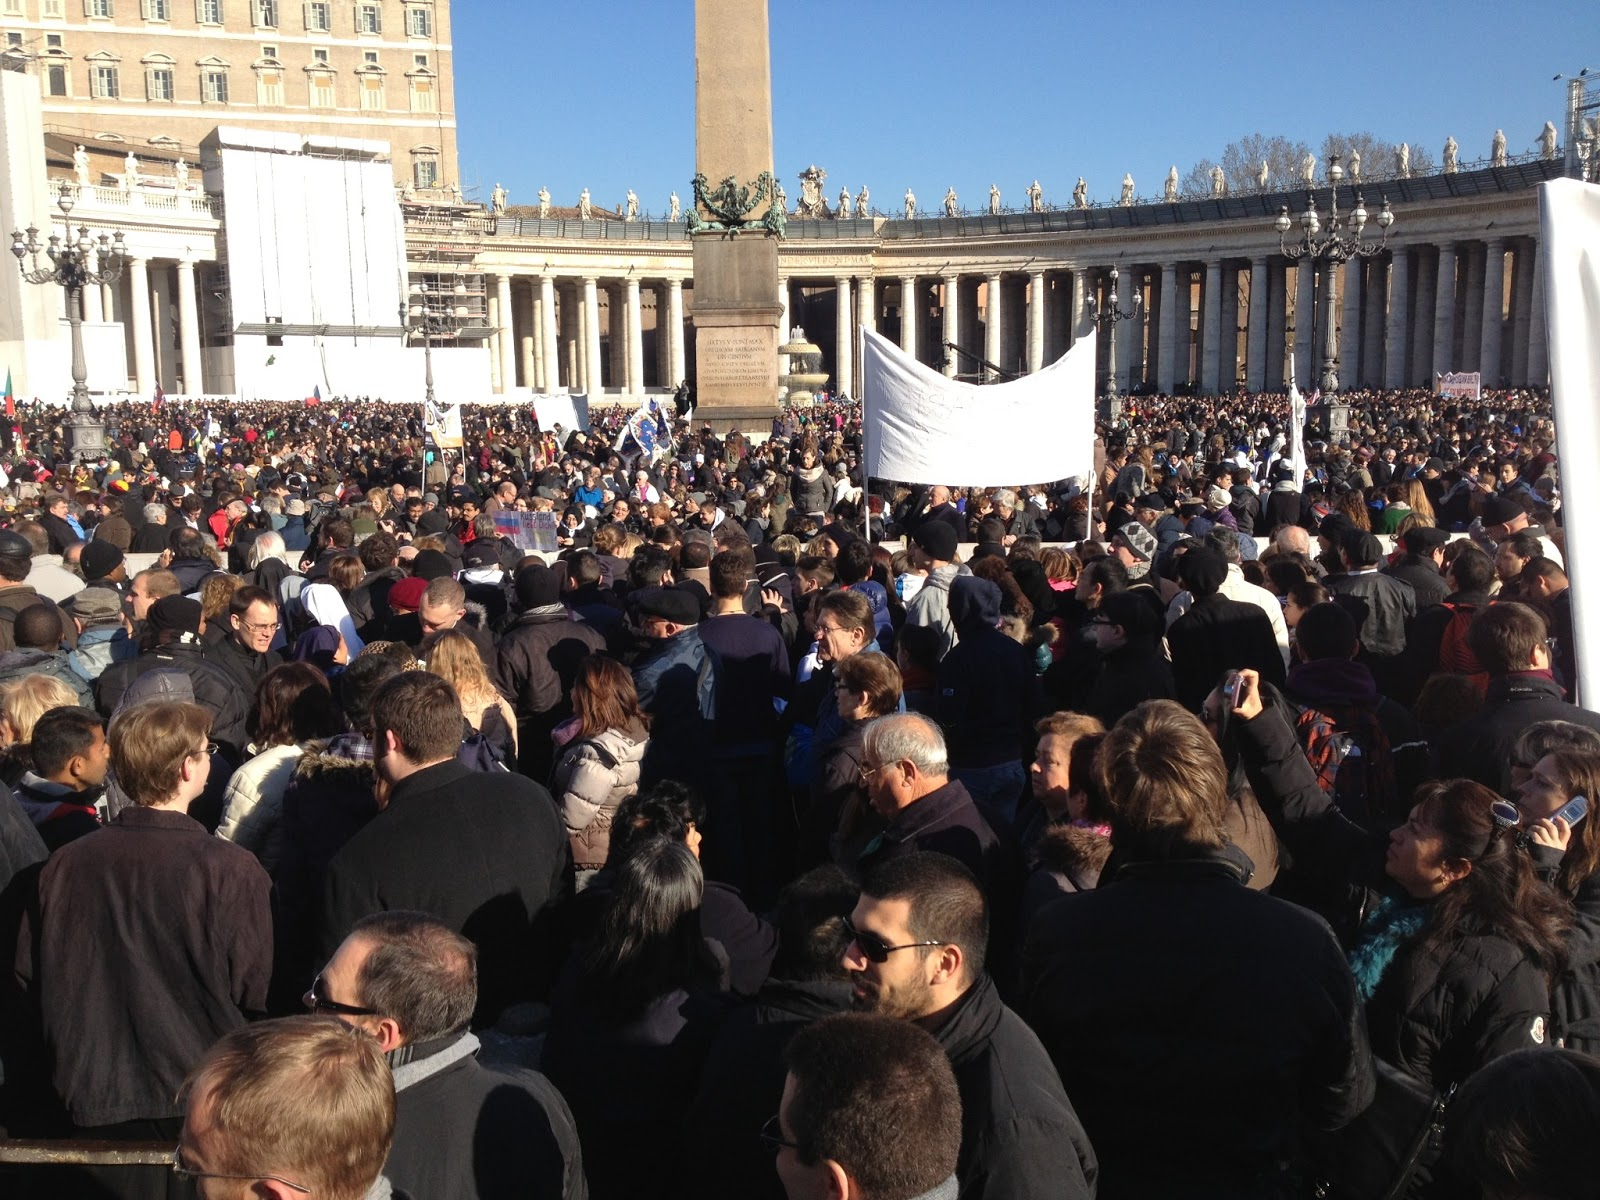 Upwards of 150,000 people came to say goodbye to Benedict XVI